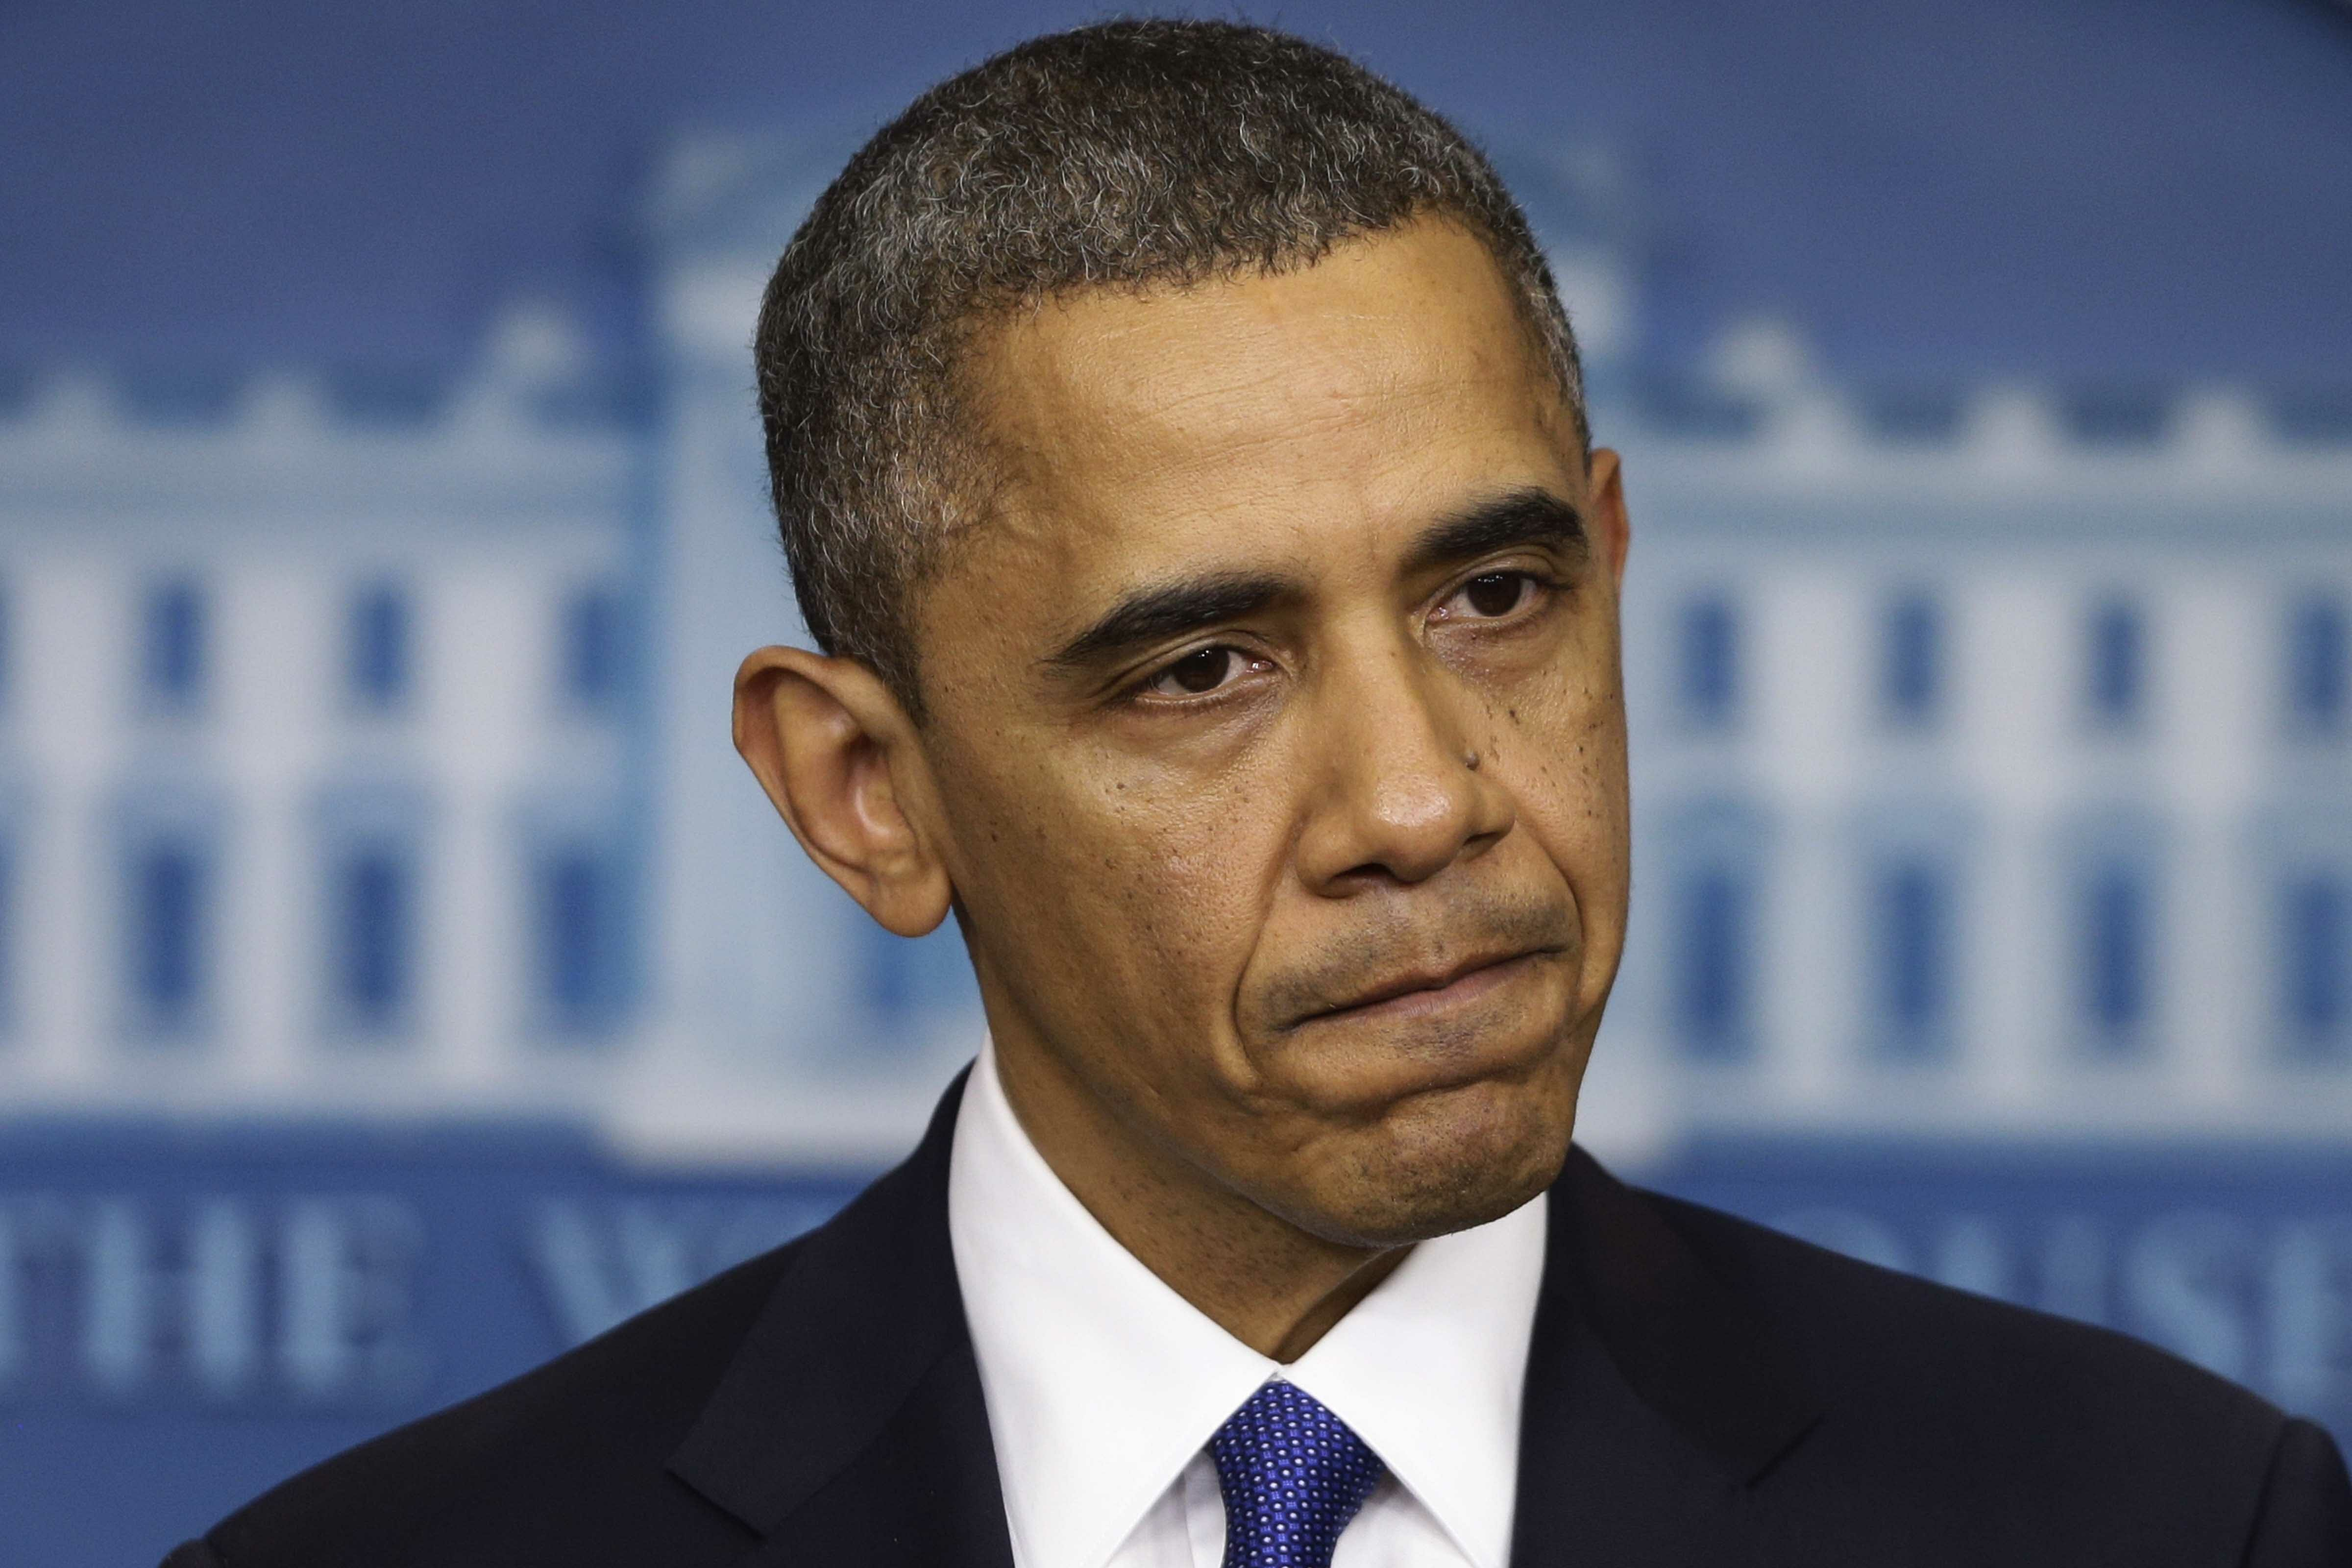 Obama Lied and Argued Against Executive Amnesty, Then Lied and Said DACA Only Temporary, Now Lies and Calls Trump Racist for Scrapping DACA!